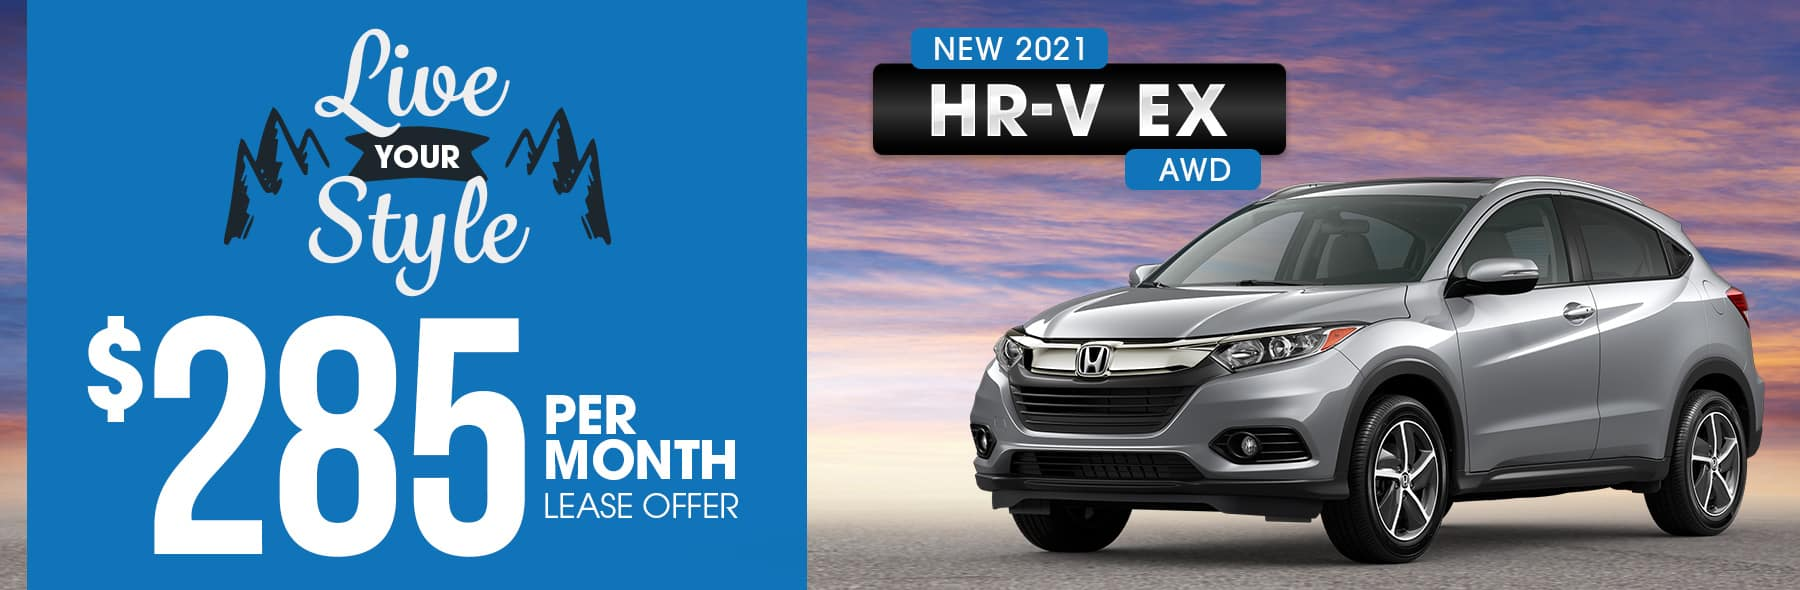 IGH-May21-HP-HRV-Lease-v1